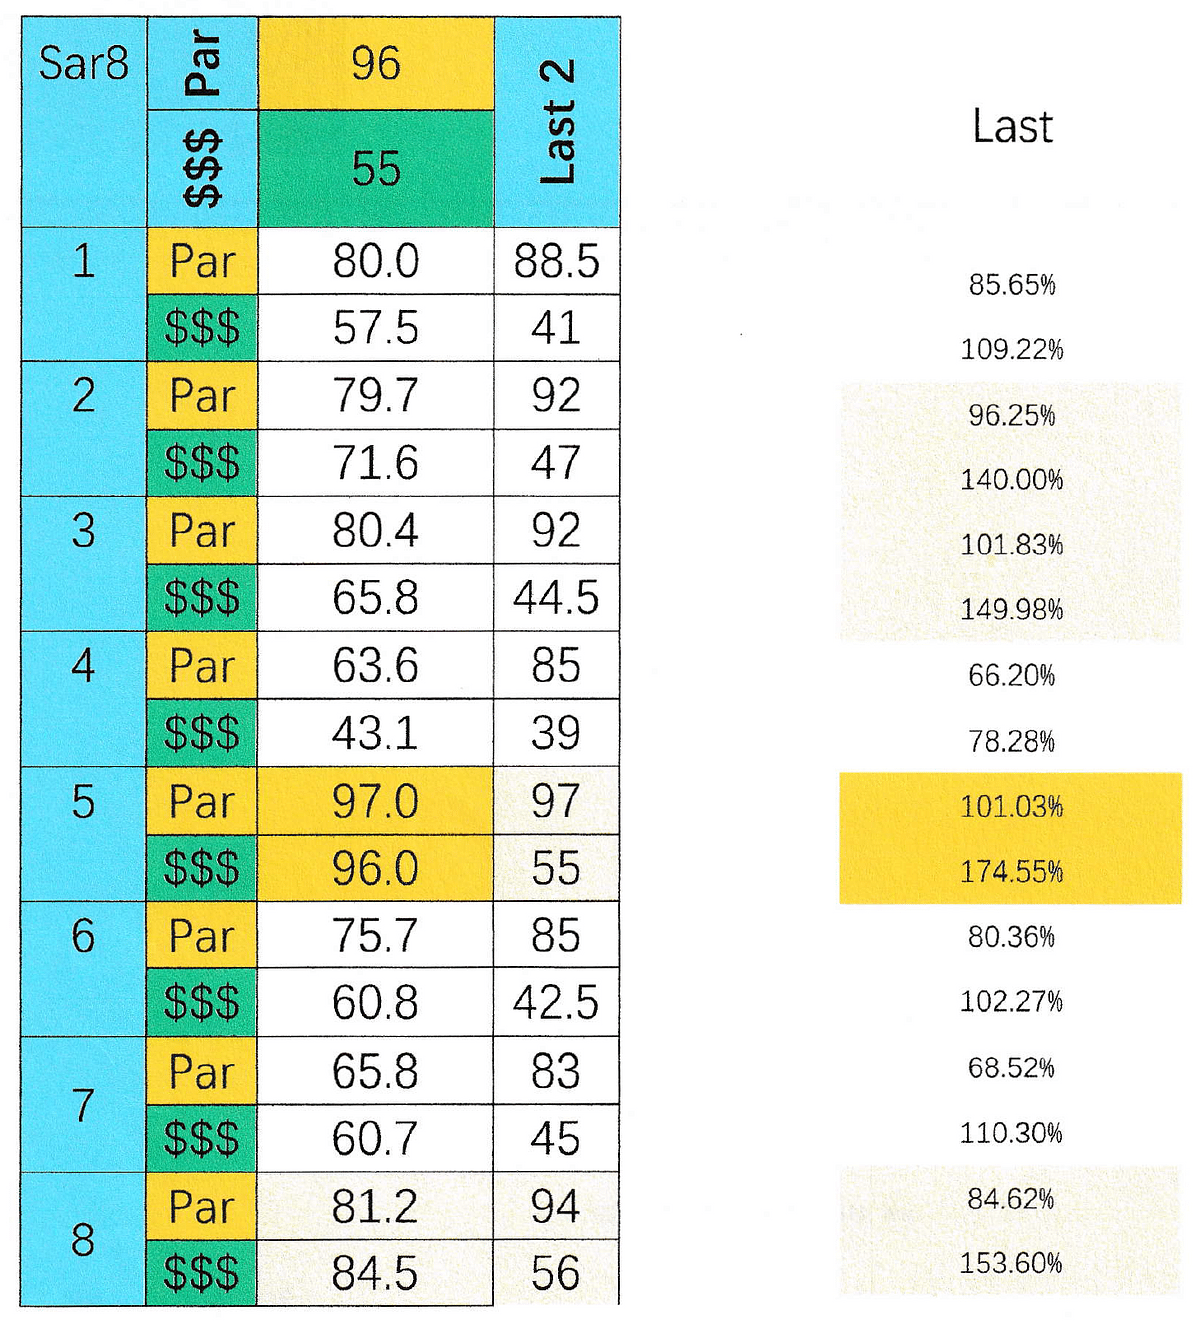 SmartCap analysis of the 8th at Saratoga